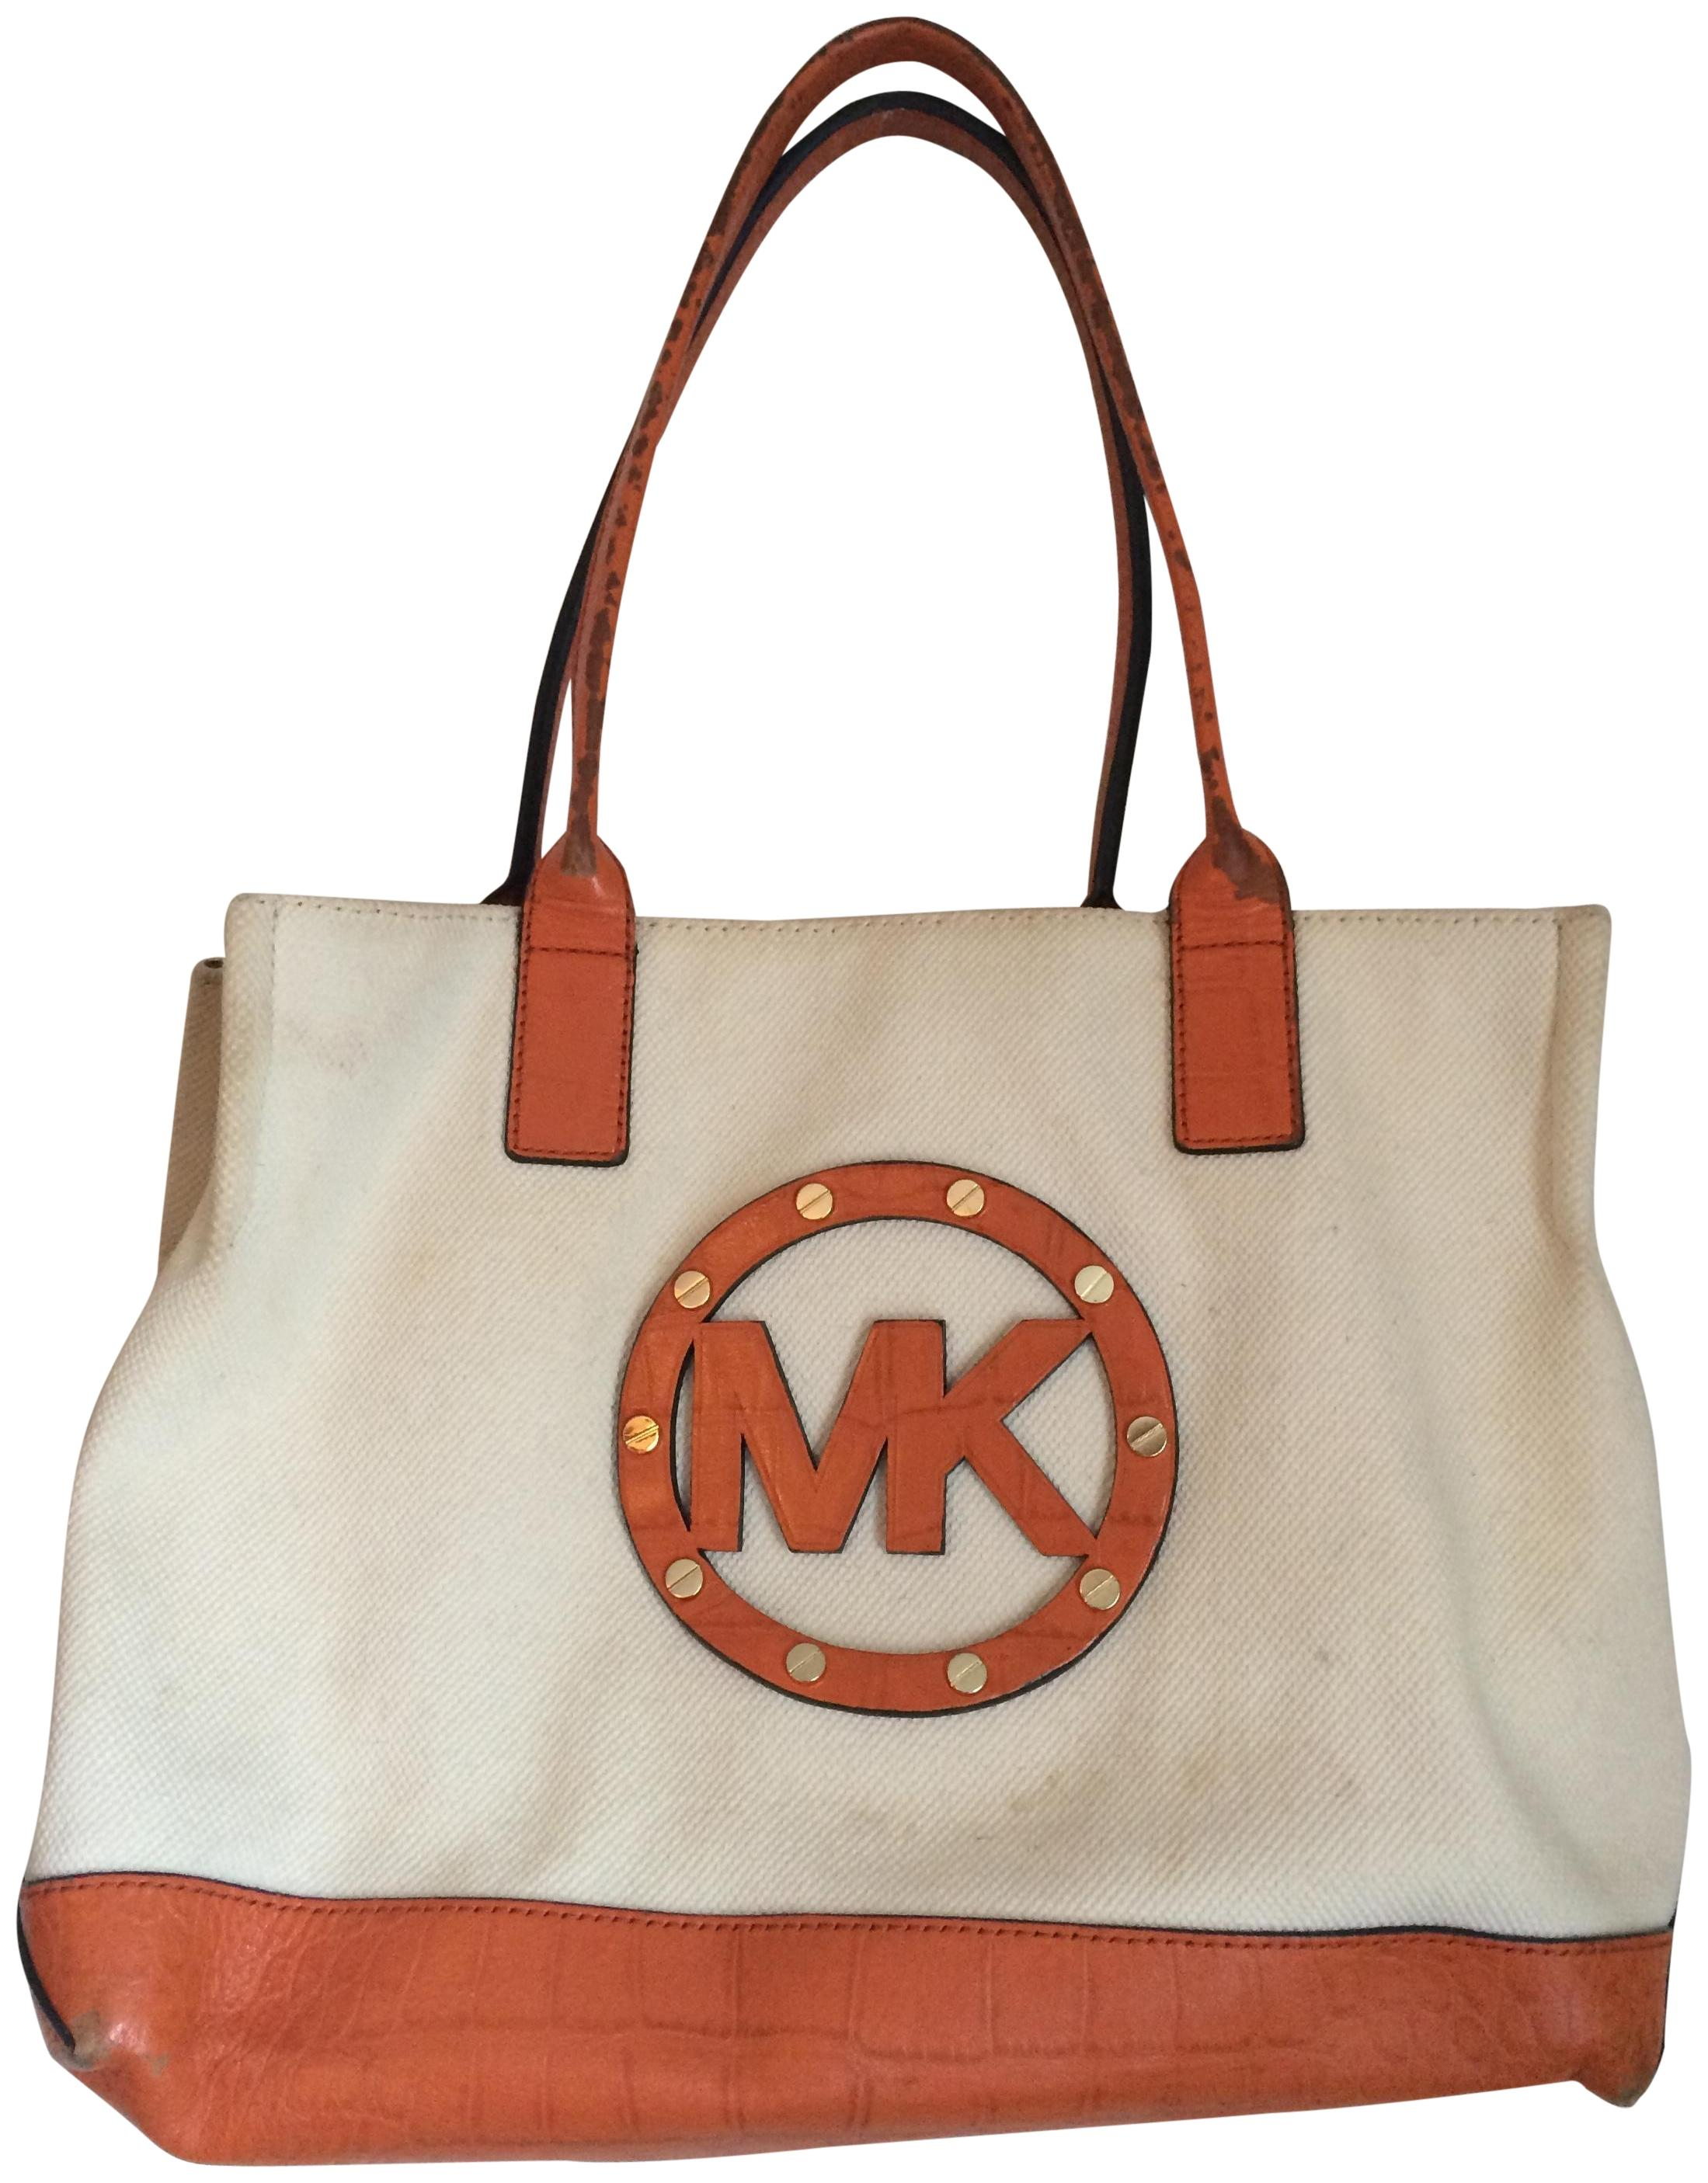 d5ddb424ca78fb discount code for home michael kors jet set tangerine canvas tote. click  thumbnail to zoom. found 79a2e eac1a; czech michael kors leather canvas tote  in ...